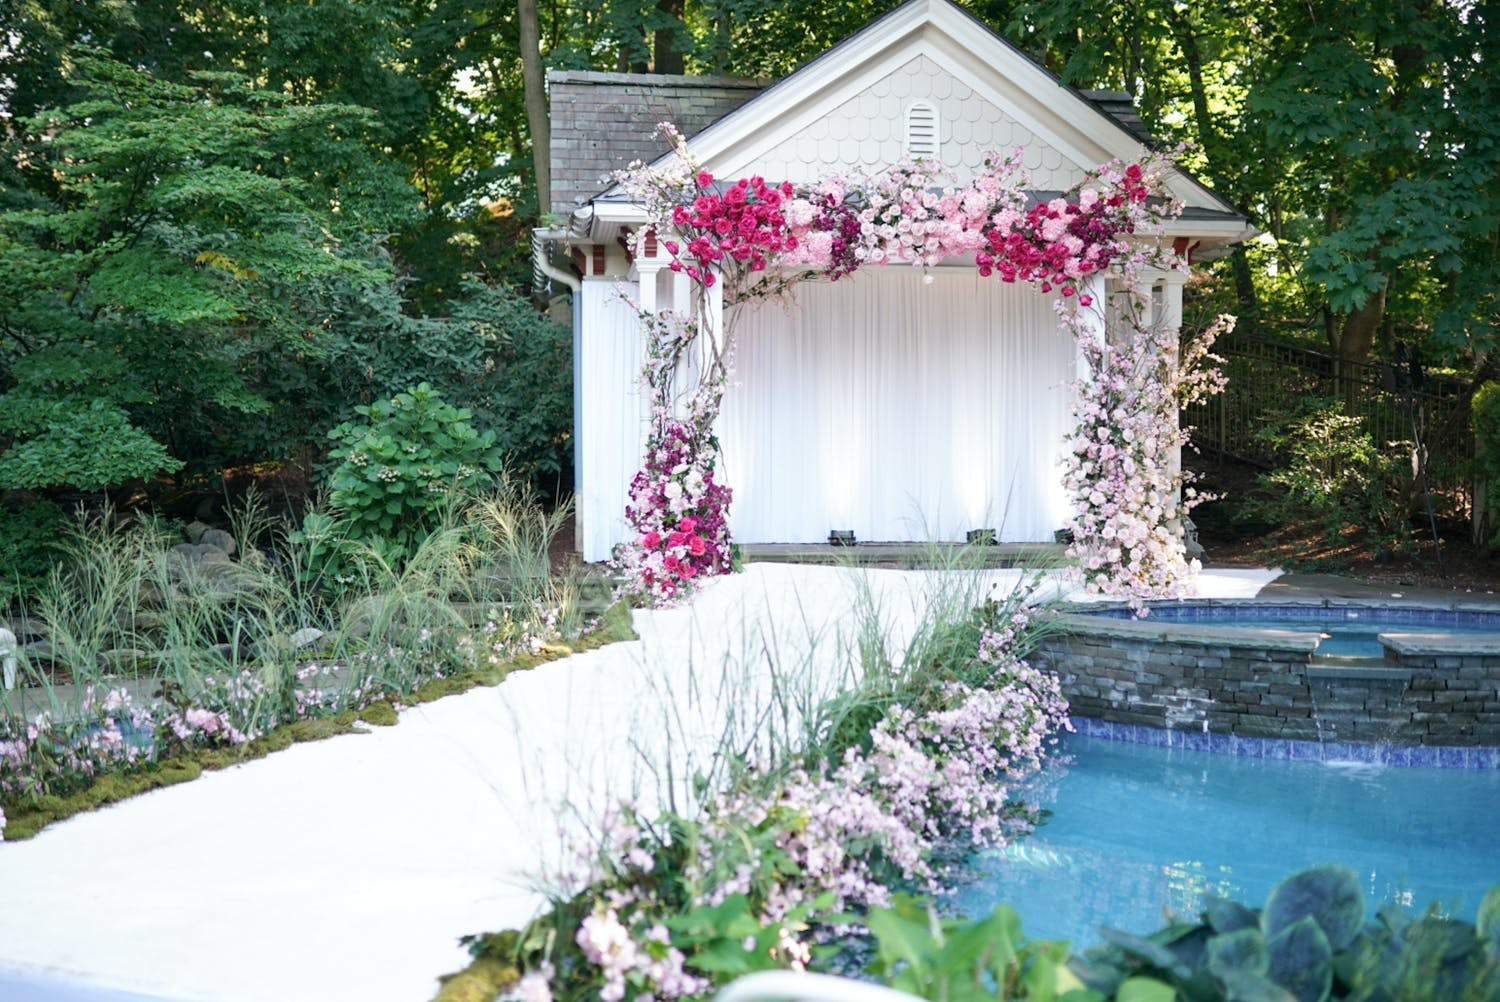 Backyard wedding with white aisle running alongside inground pool and pink floral arch against small white building   PartySlate